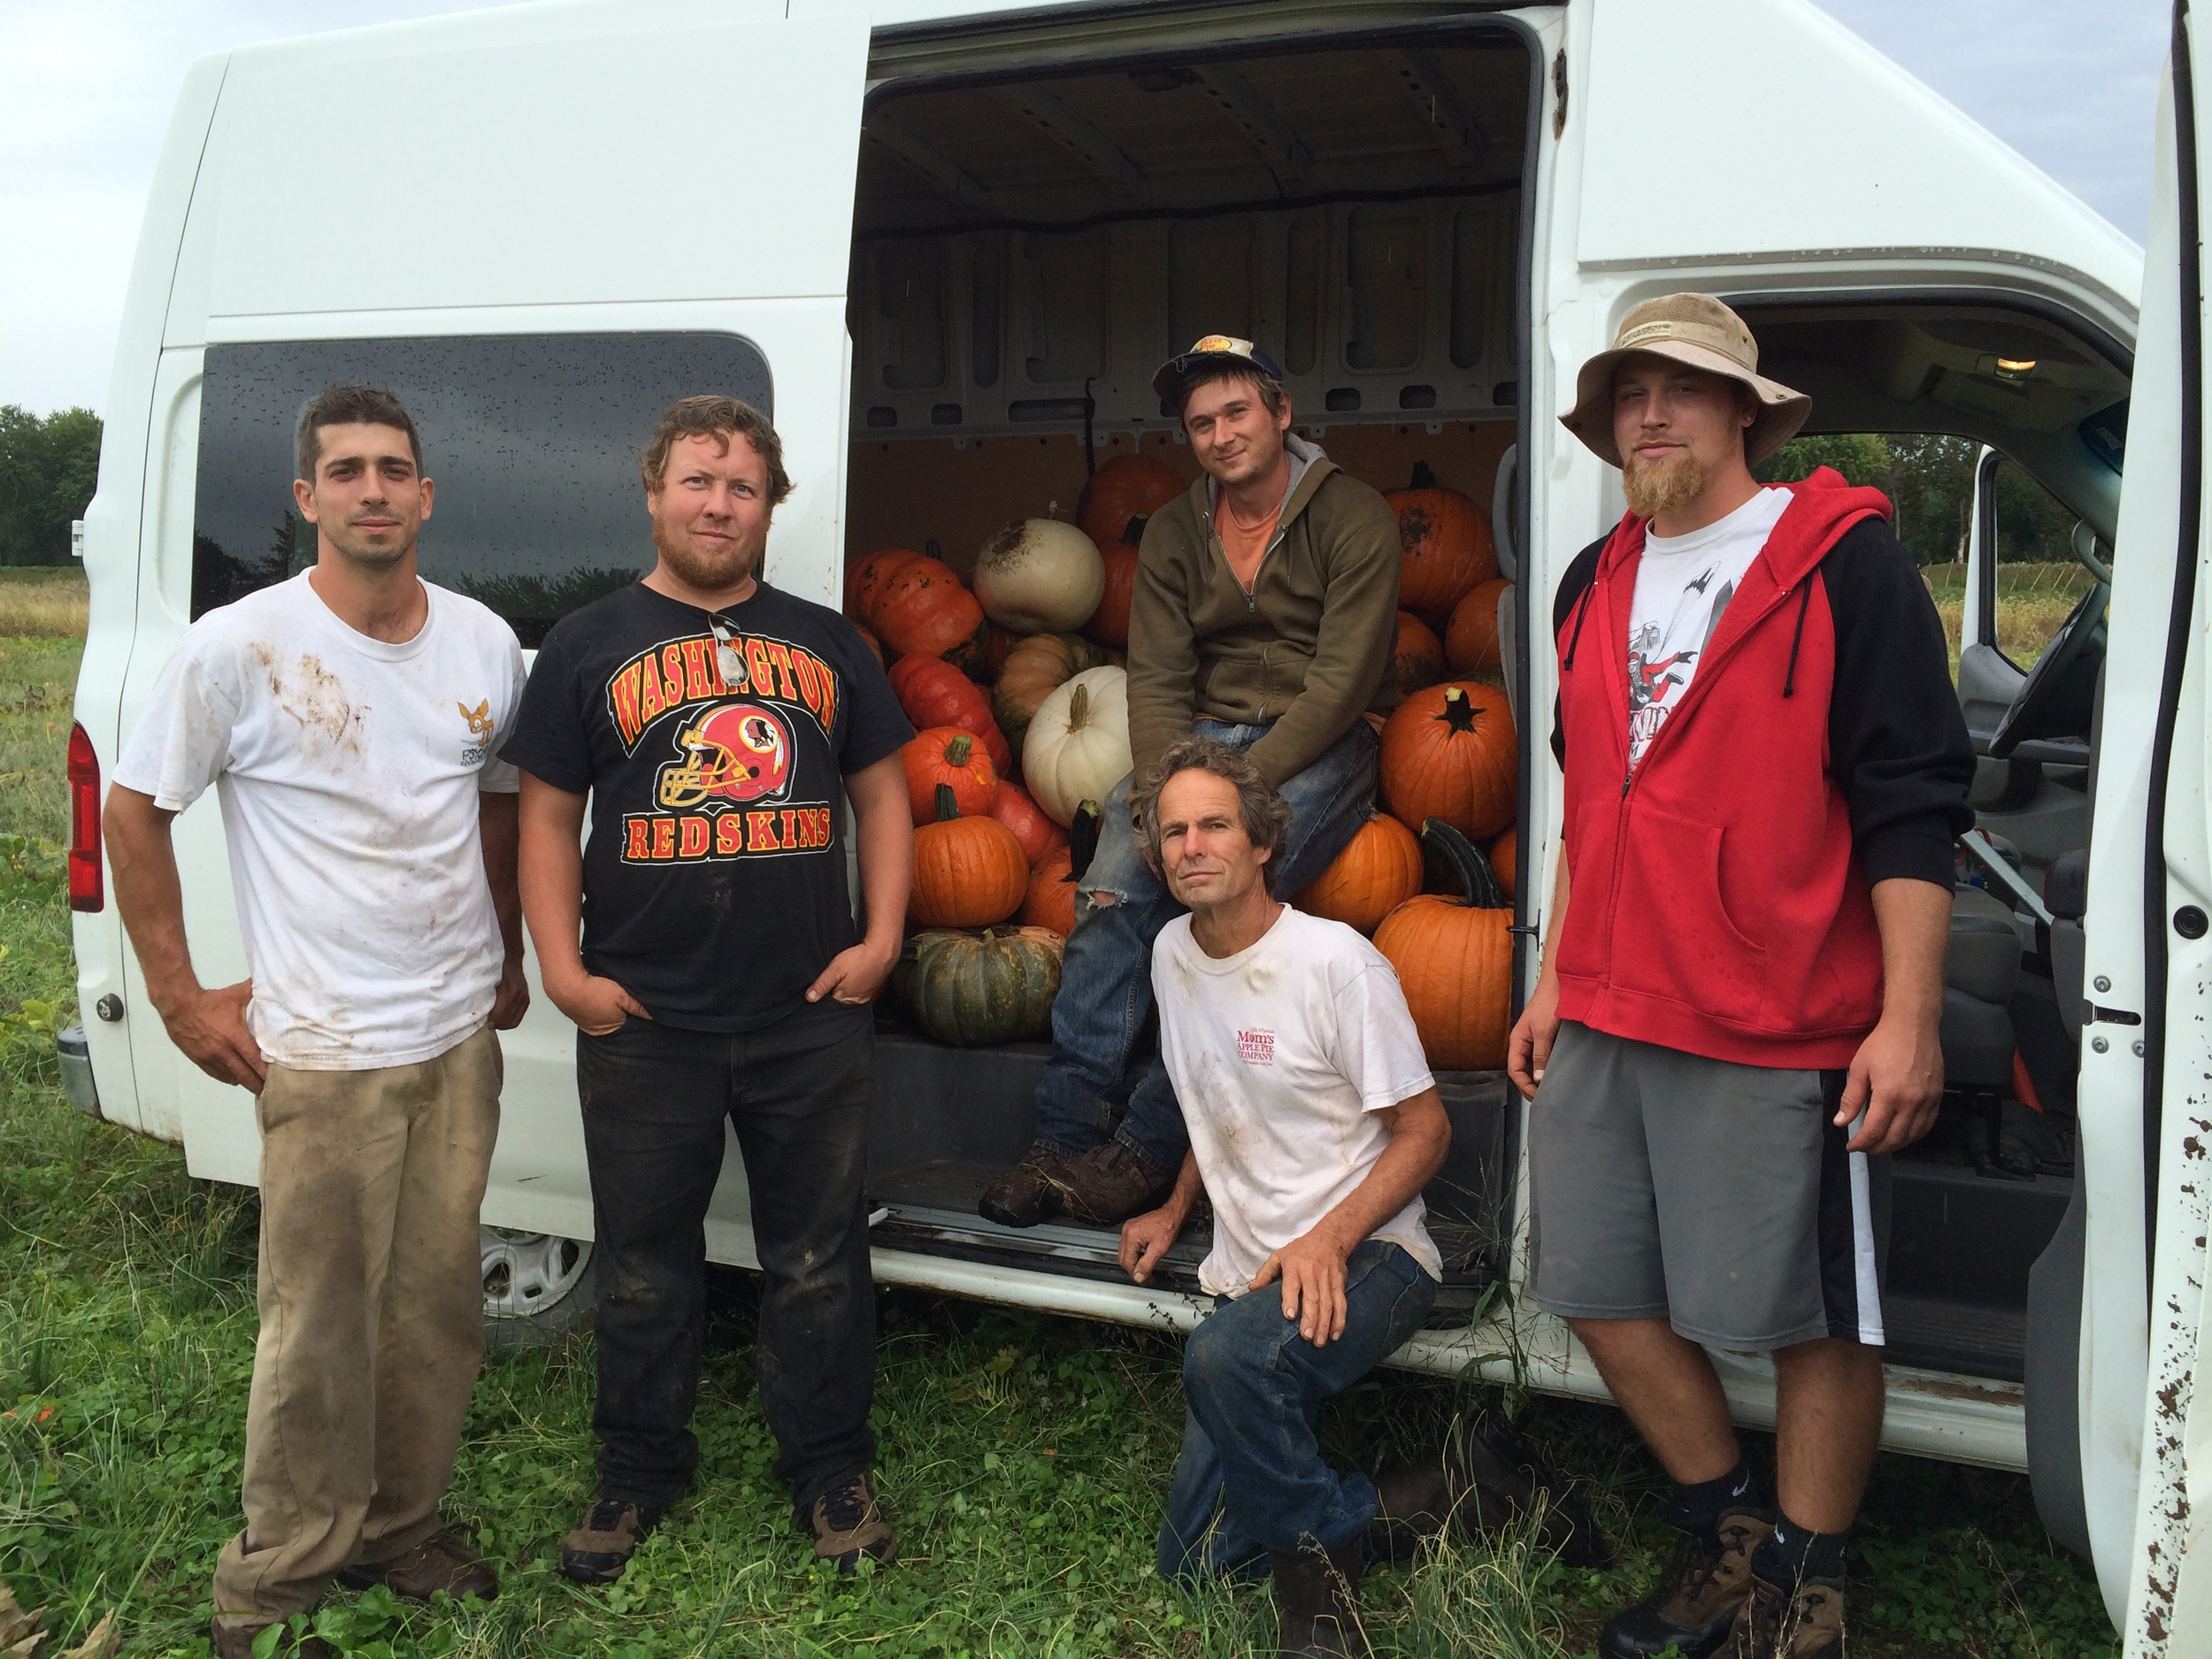 Our motley crew, just after loading up the van